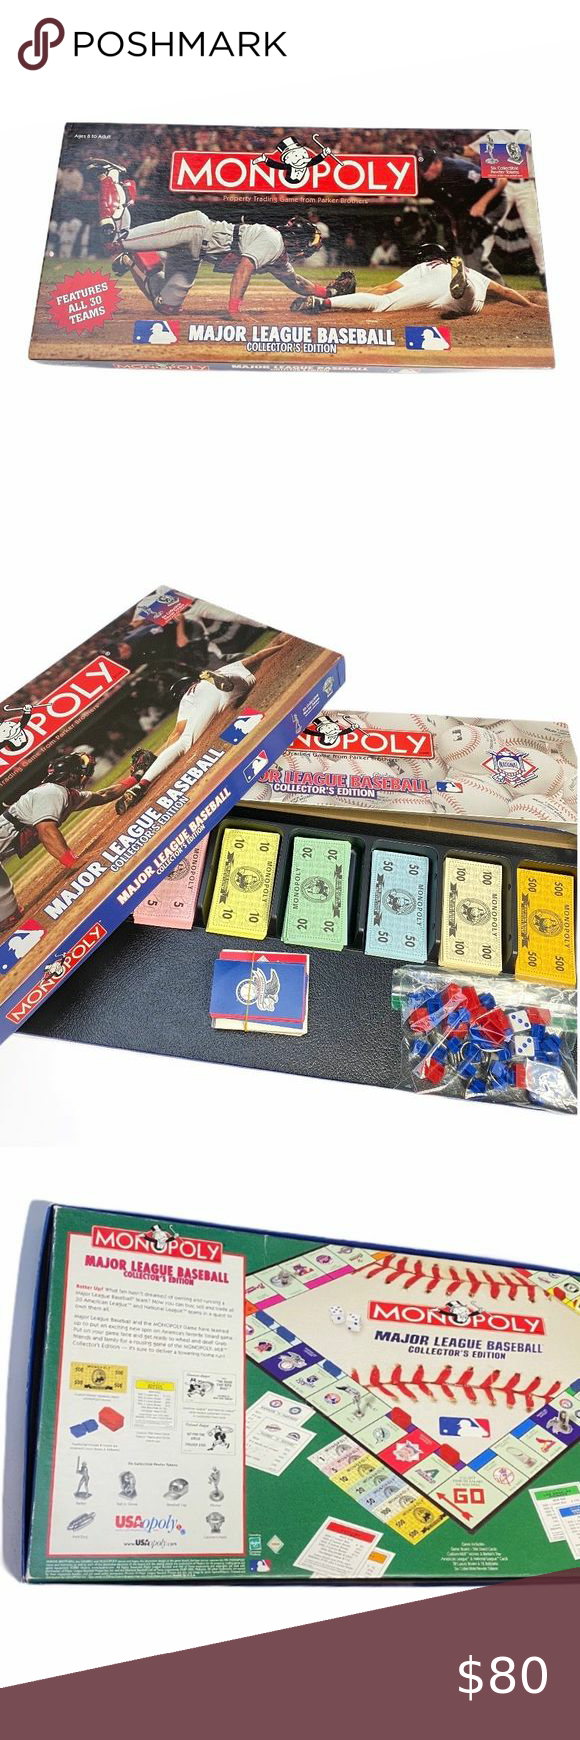 Monopoly Major League Baseball Game 2003 in 2020 Major